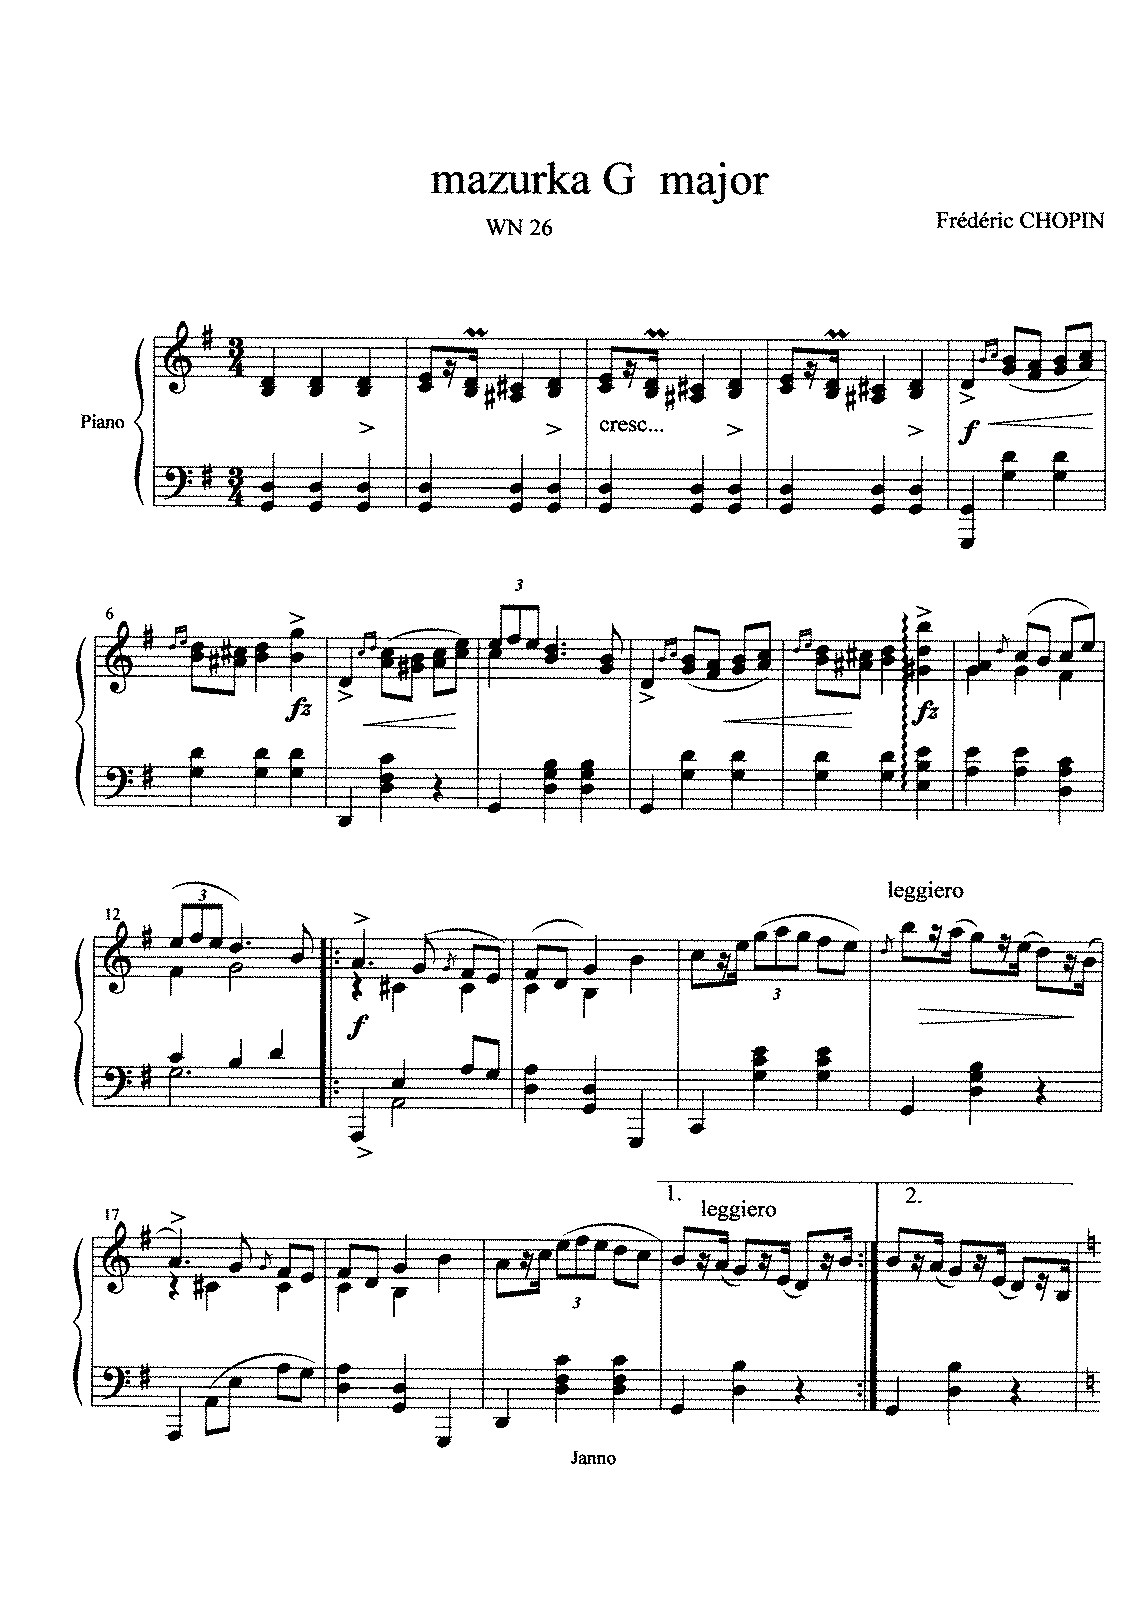 PMLP115348-mazurka g major chopin 144.pdf